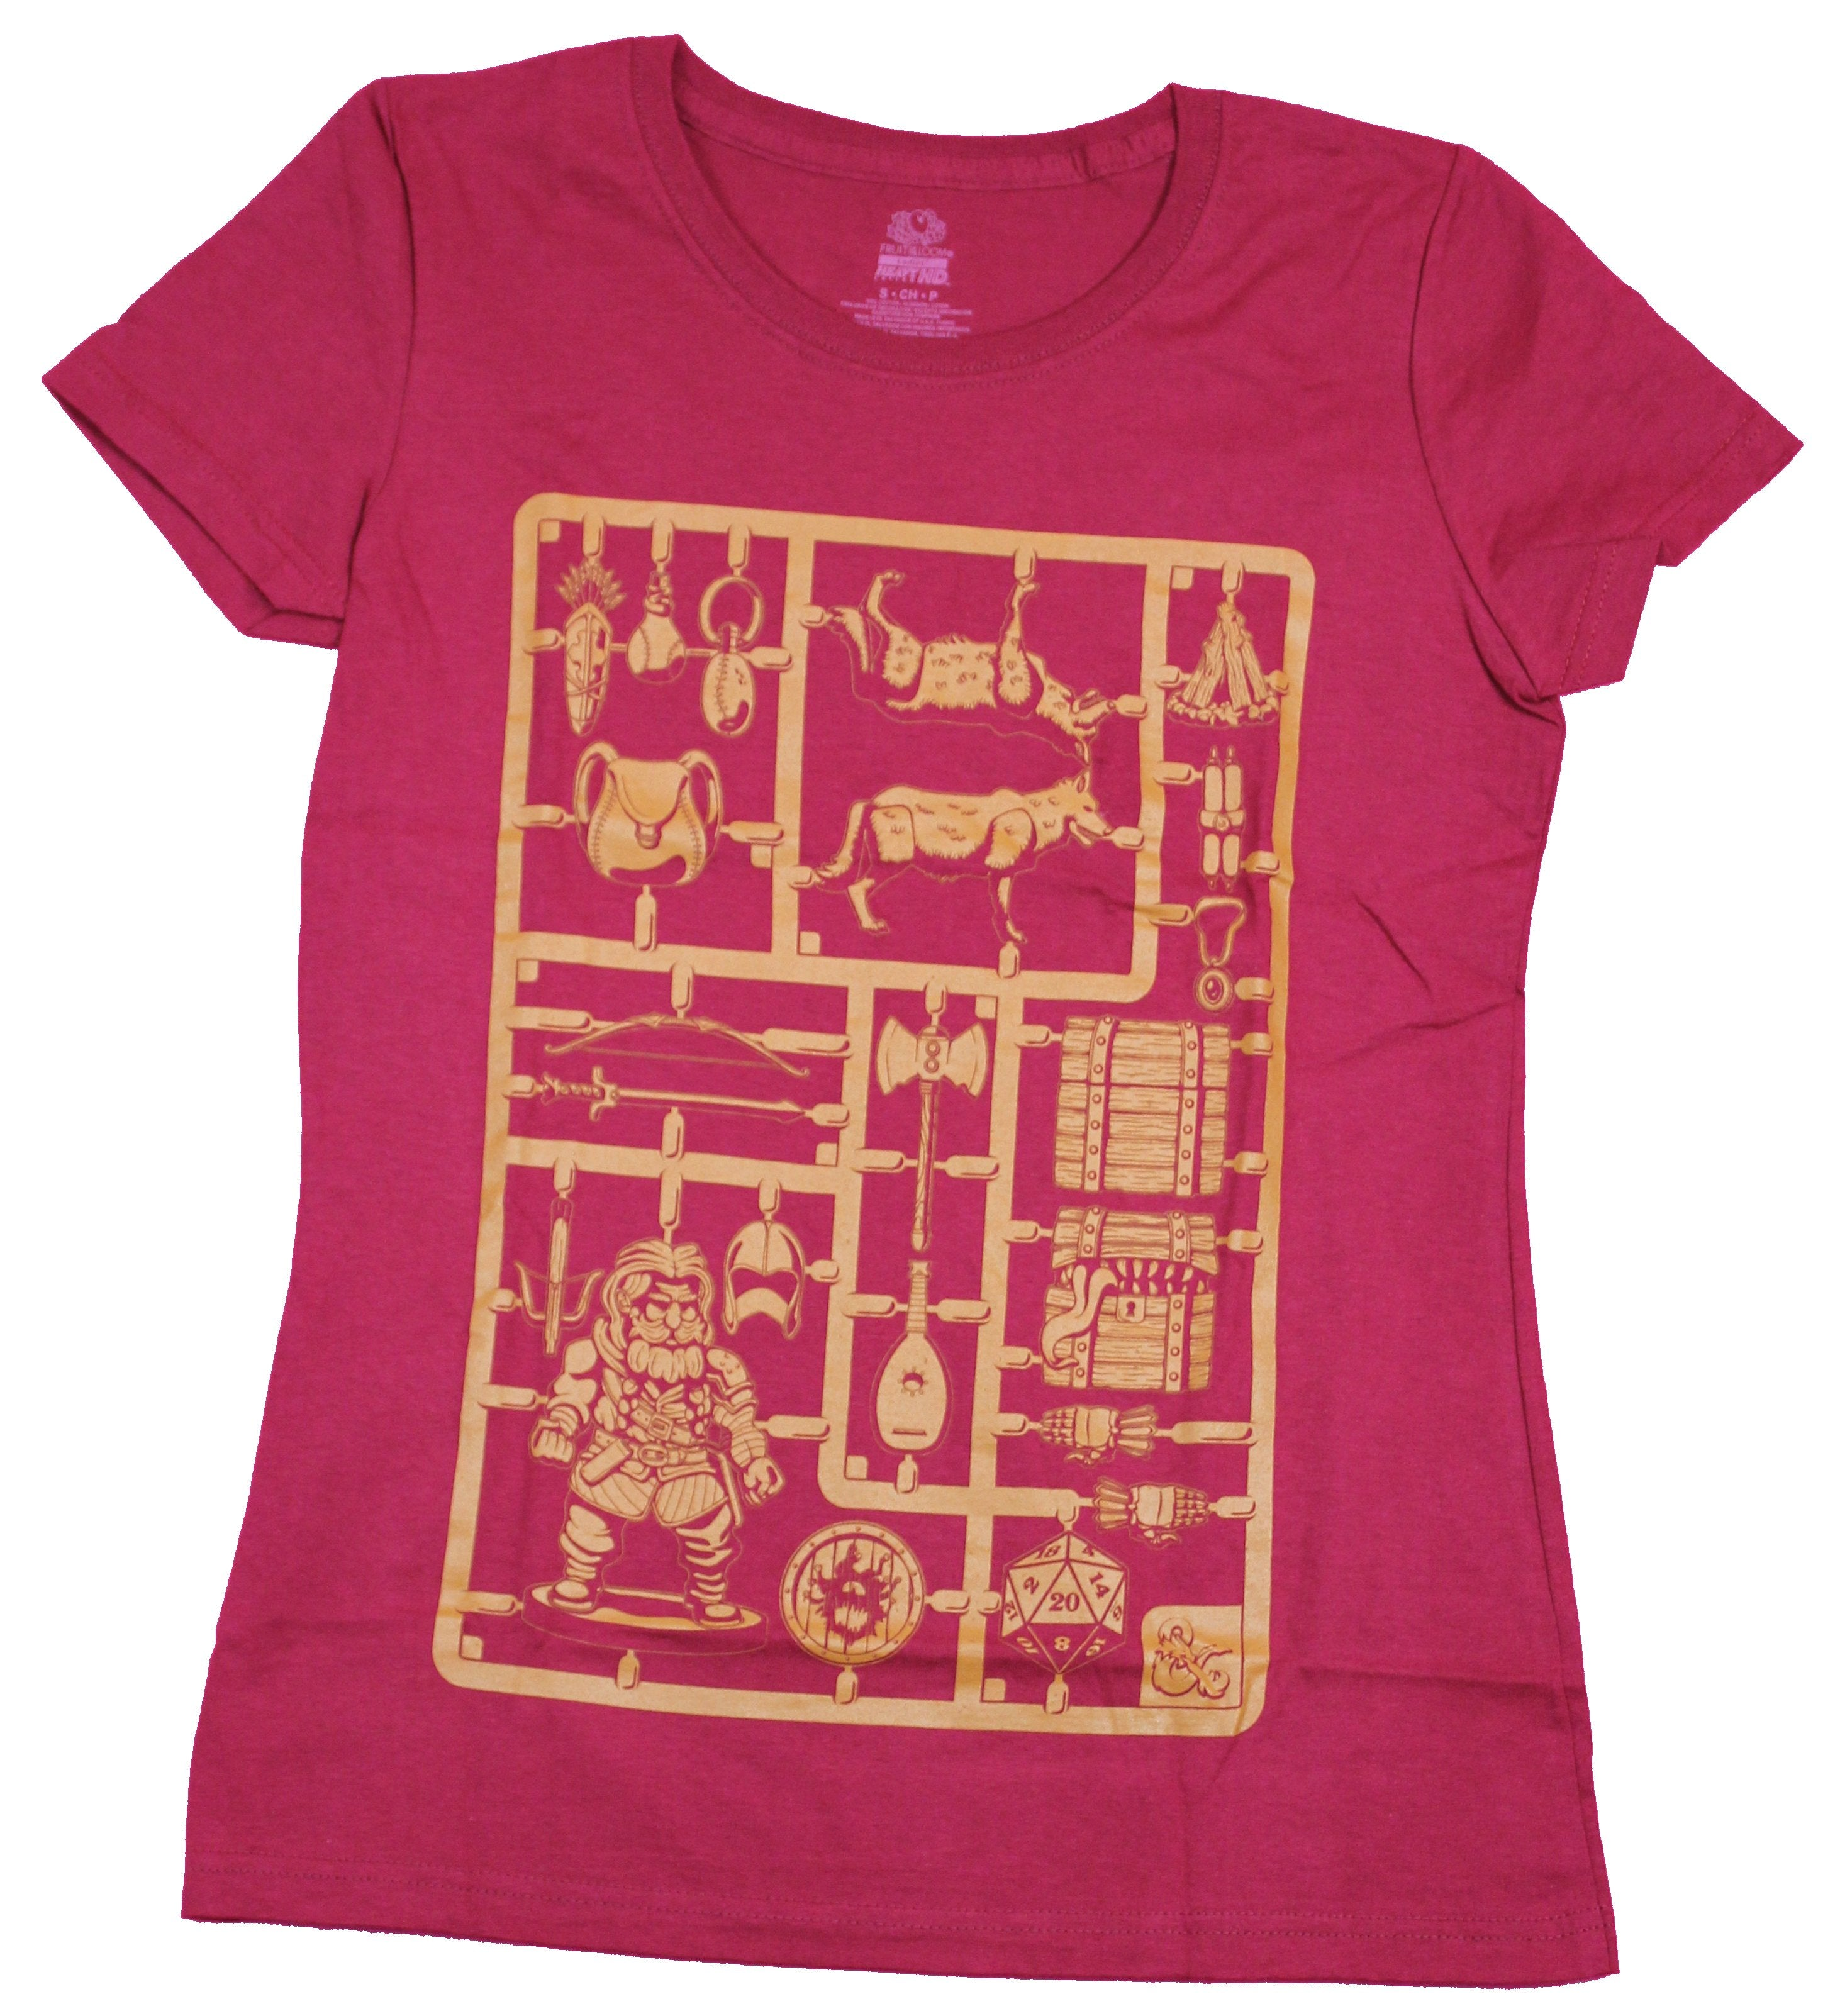 Dungeons & Dragons Girls Juniors T-Shirt- Pop Out Pieces Image